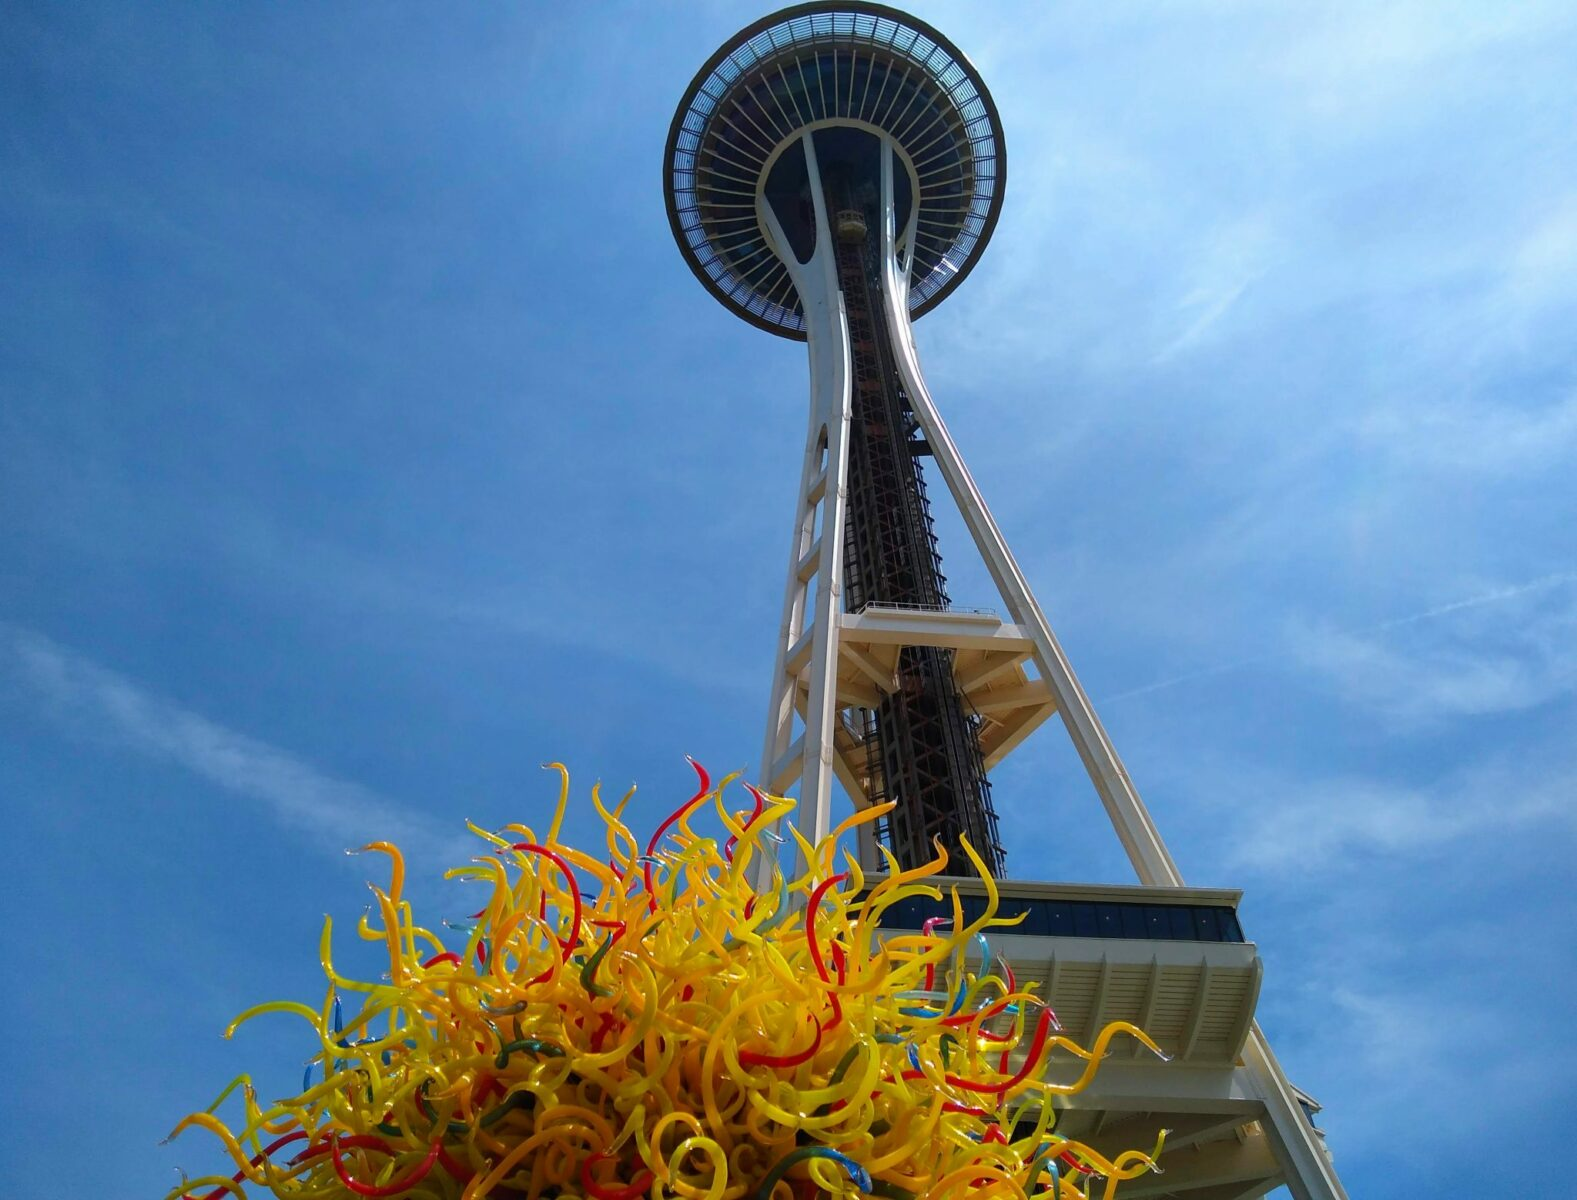 The Space Needle against the blue sky with a yellow glass sculpture in the foreground, an important part of any seattle itinerary